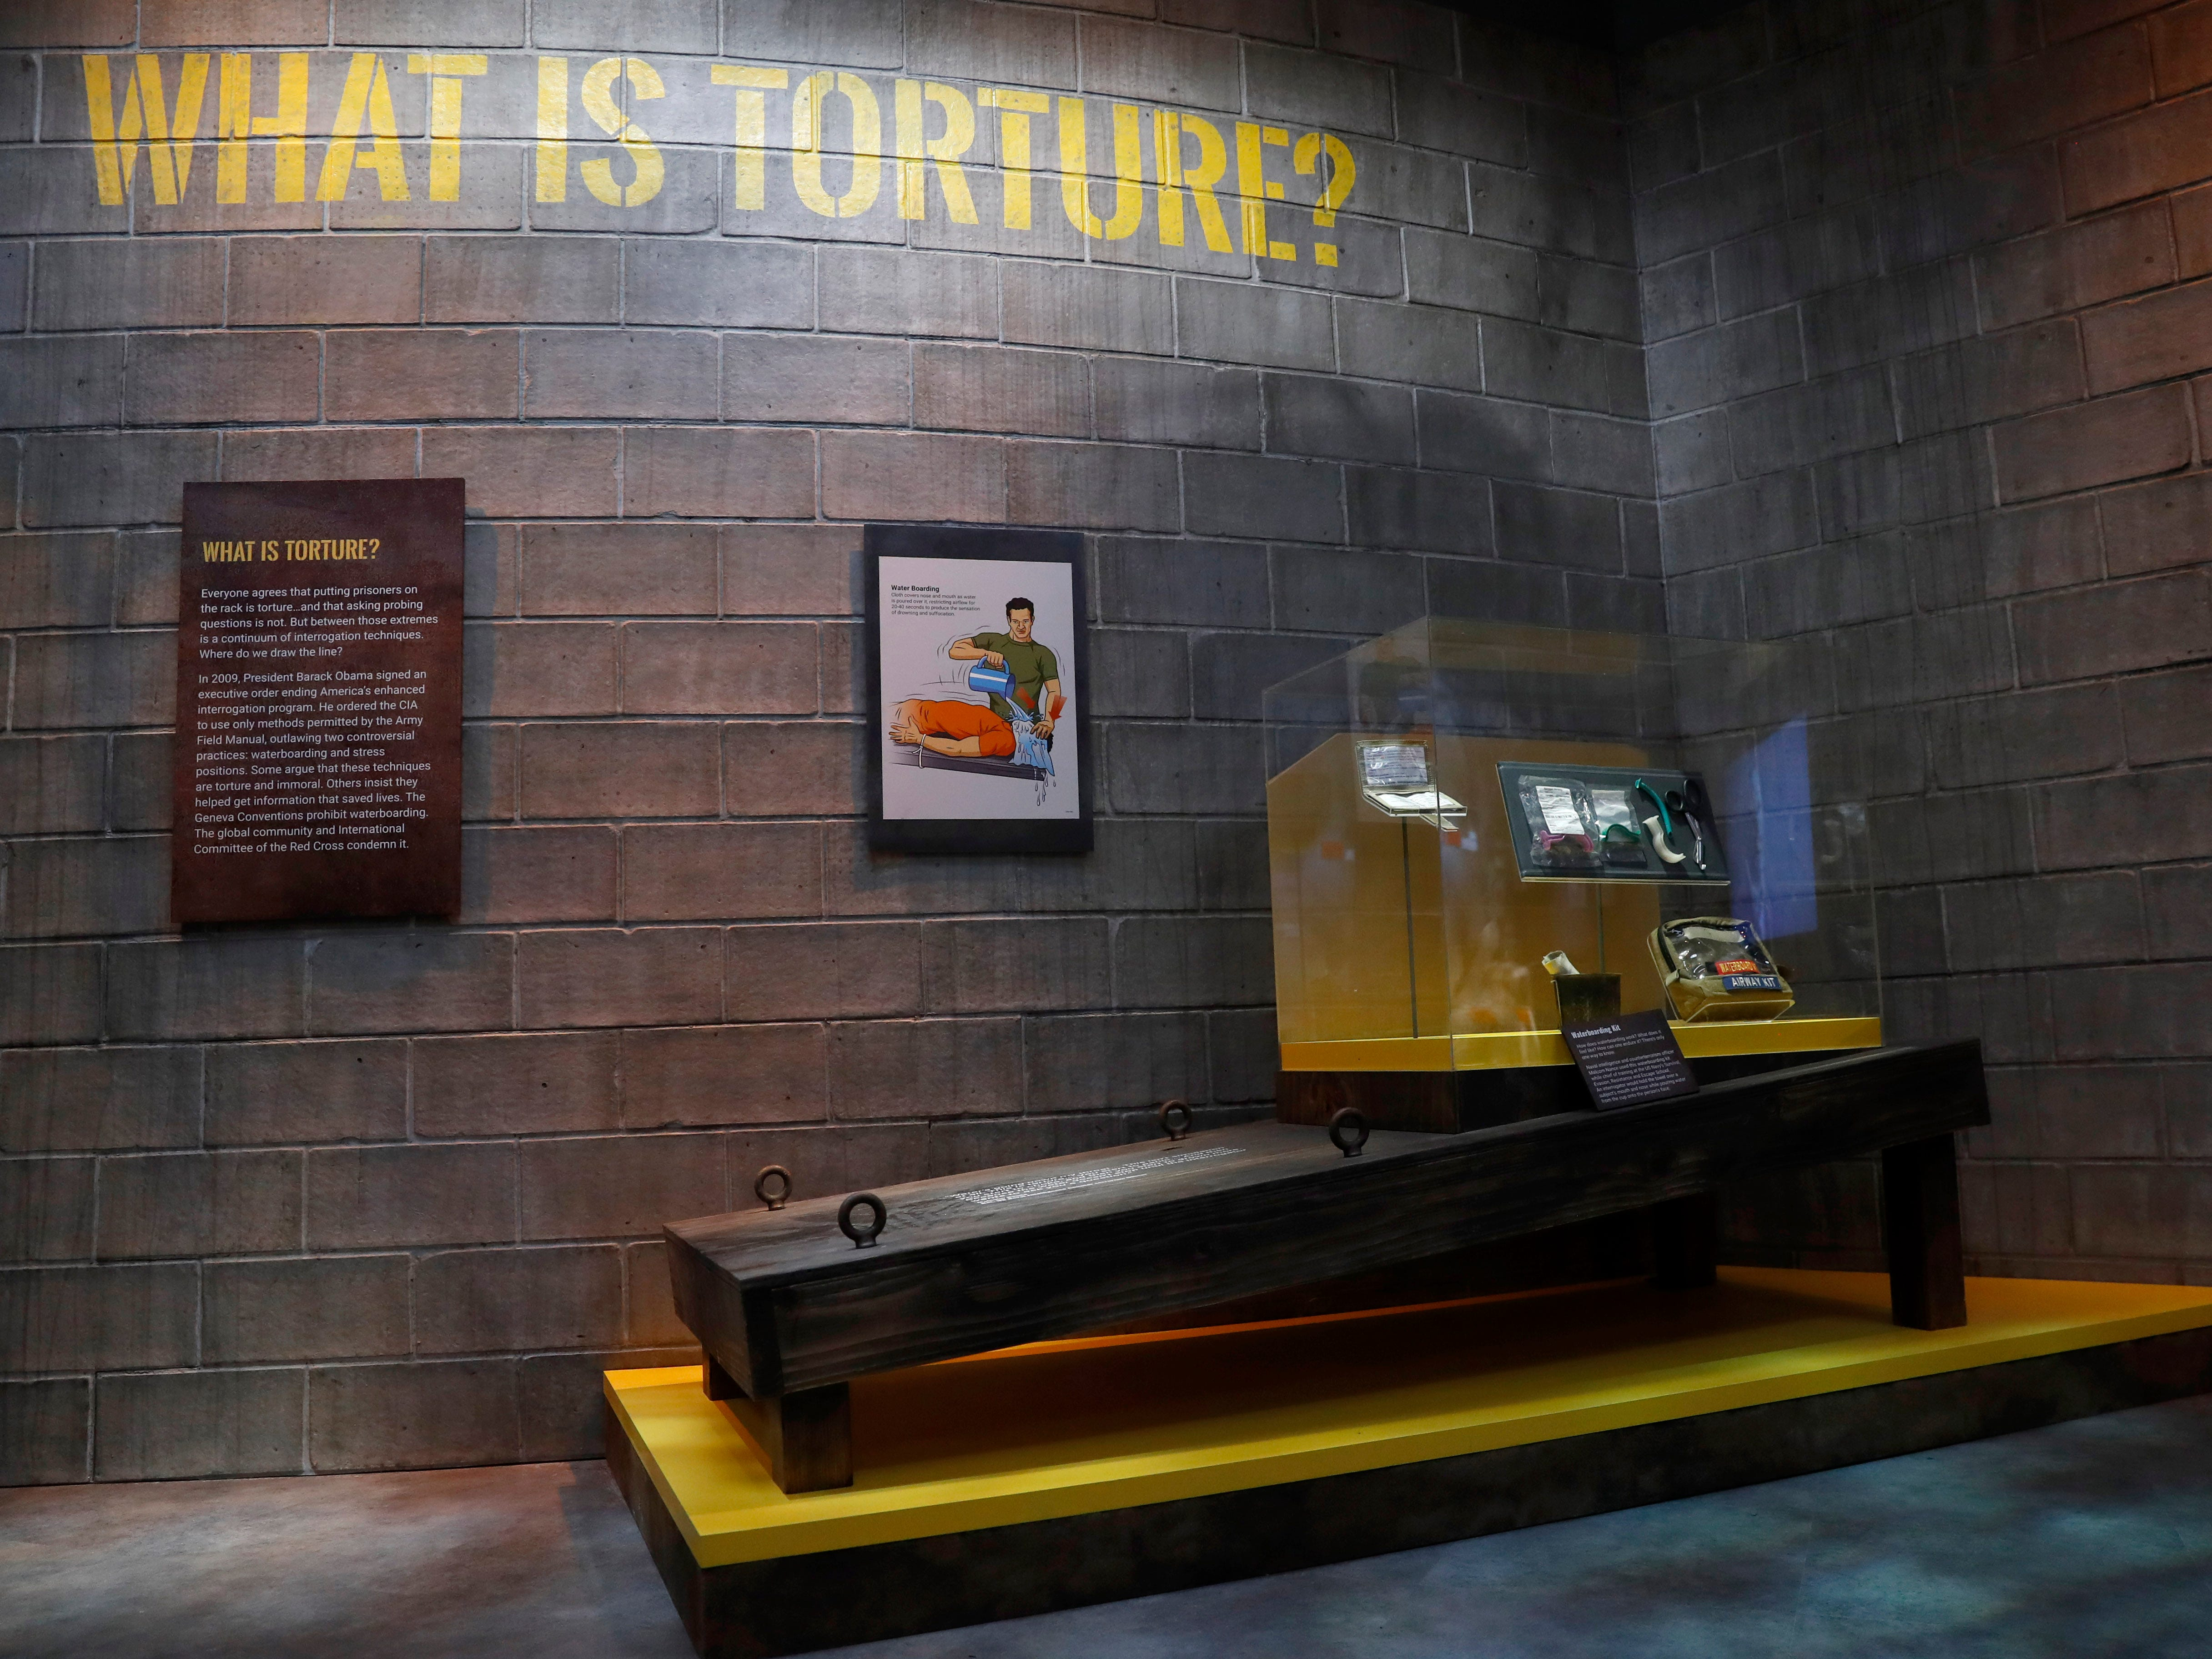 An exhibit on torture includes a section on waterboarding in the new International Spy Museum in Washington, D.C. Take a back seat James Bond, because it's the stories of real-life spies that take center stage at the expanded museum, opening in its new building on May 12, 2019.